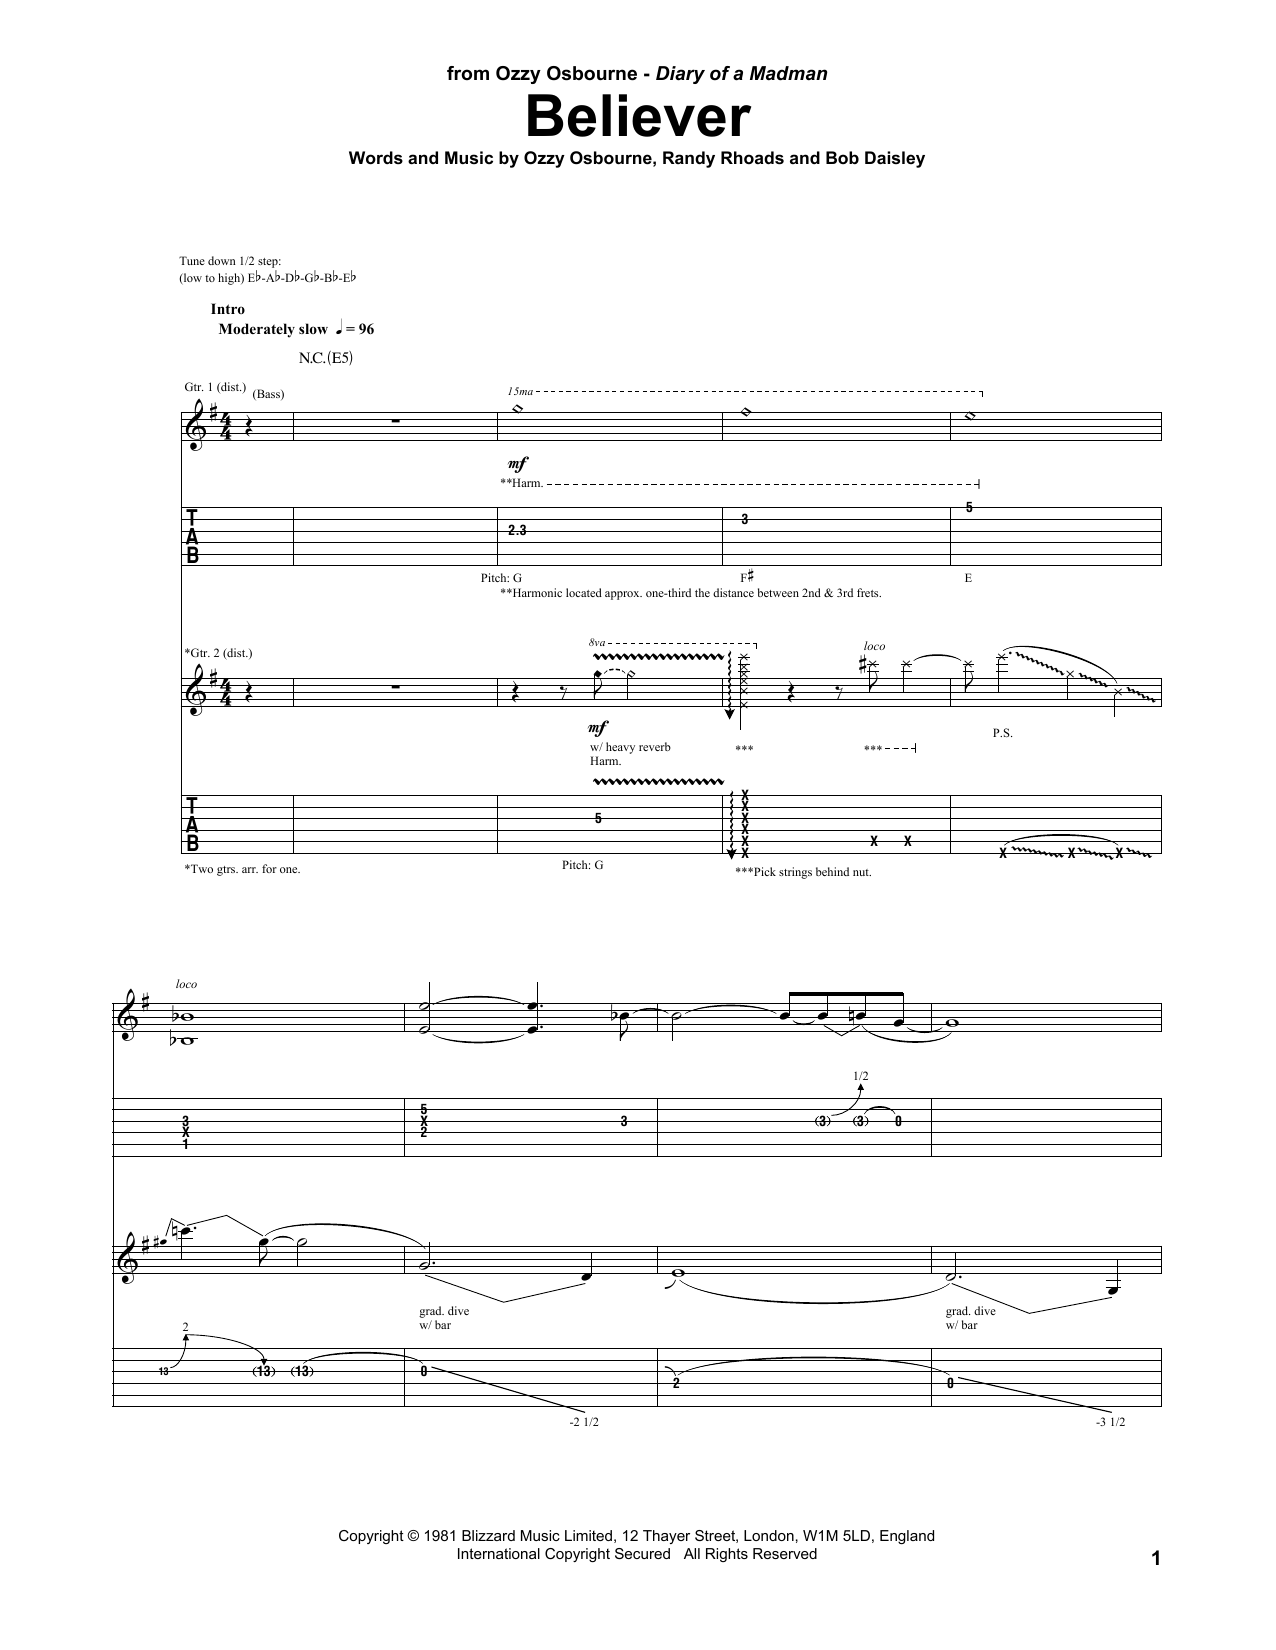 Ozzy Osbourne Believer sheet music notes and chords. Download Printable PDF.